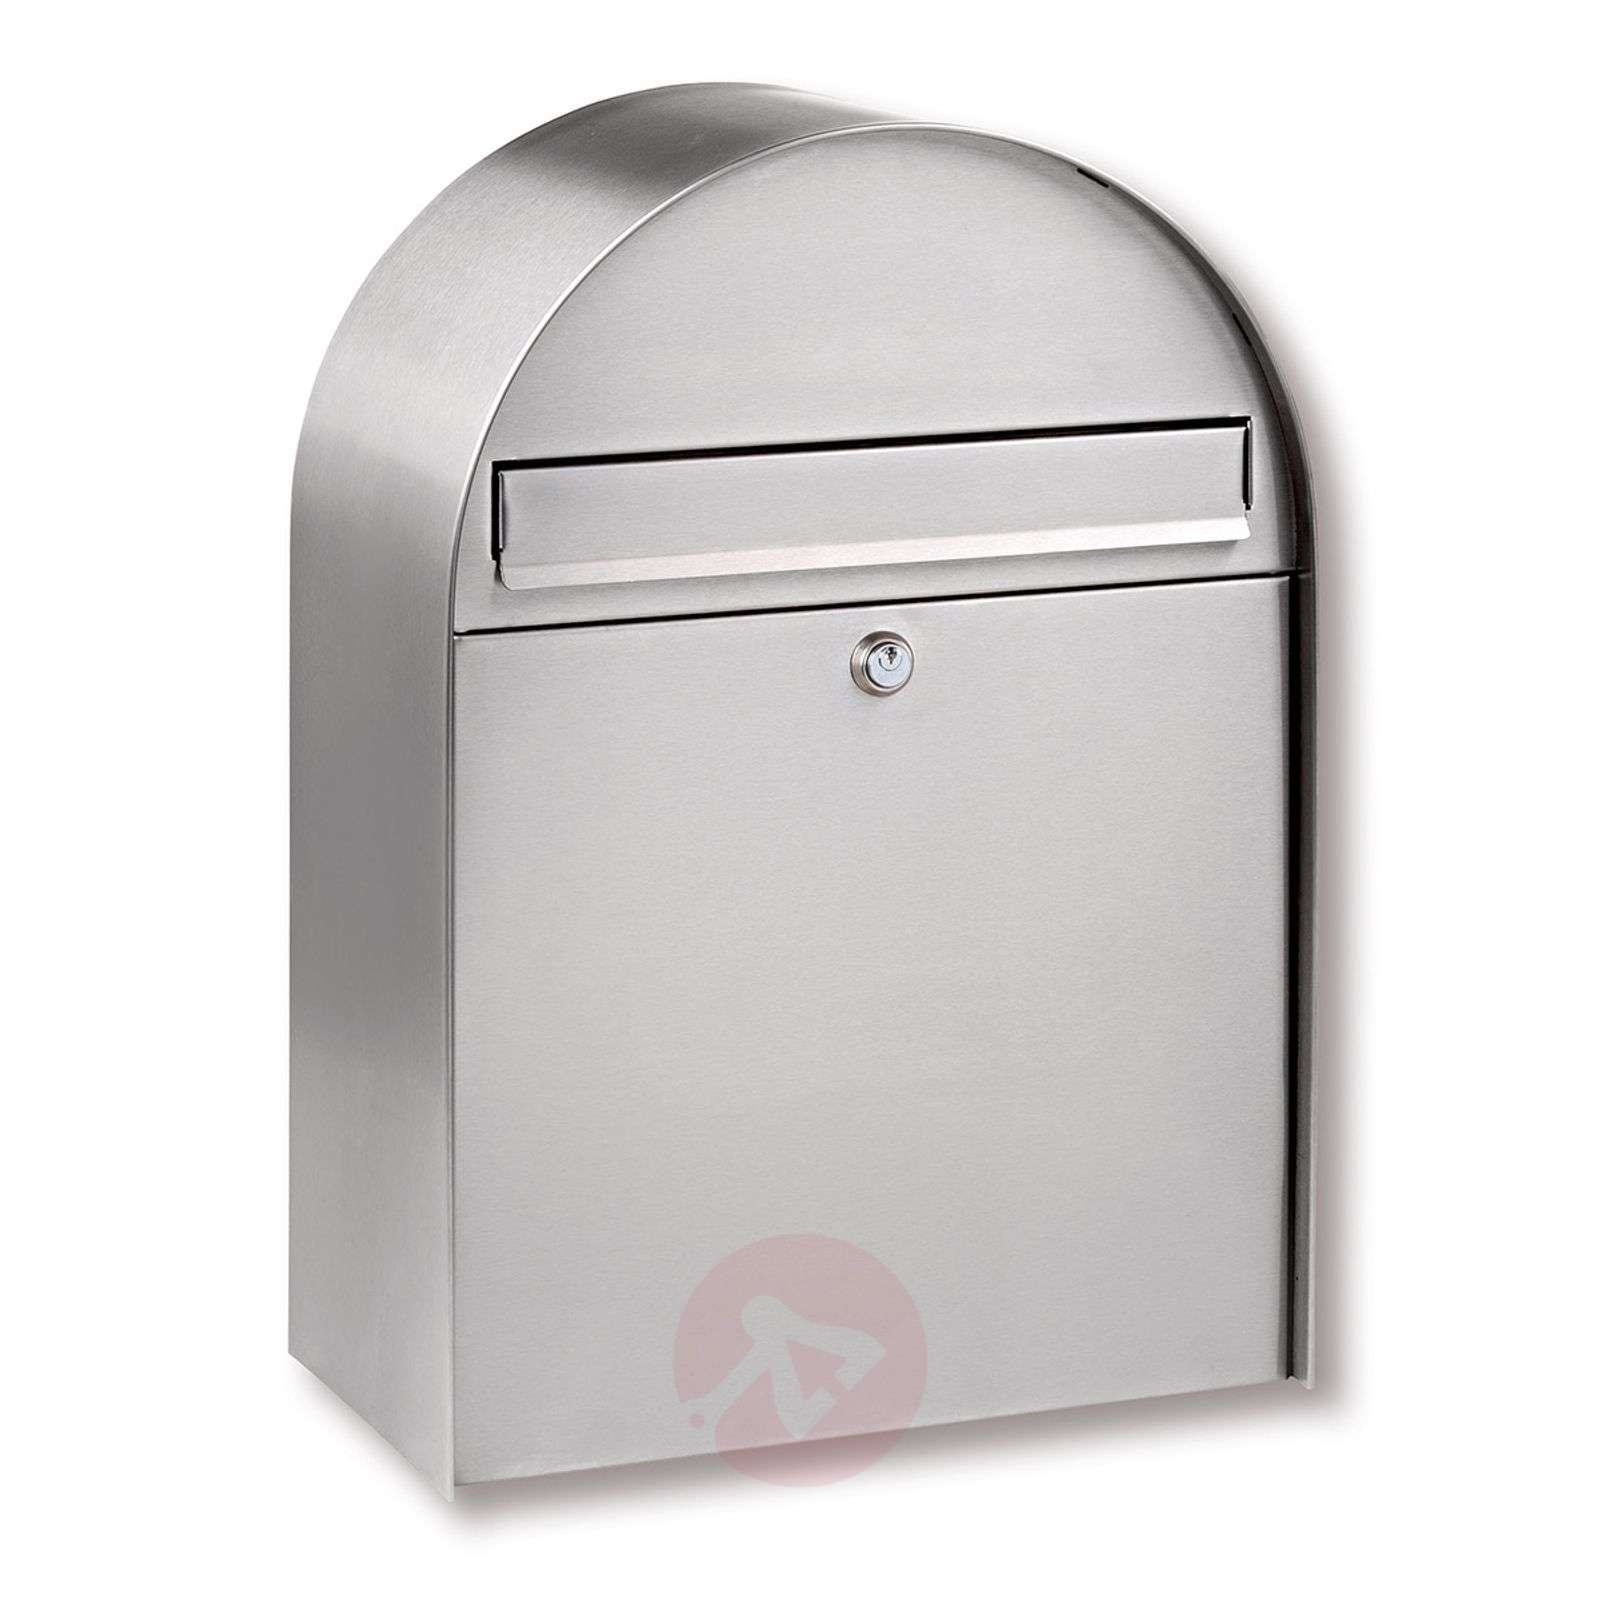 Nordic stainless steel letter box with curved form-1532134-01